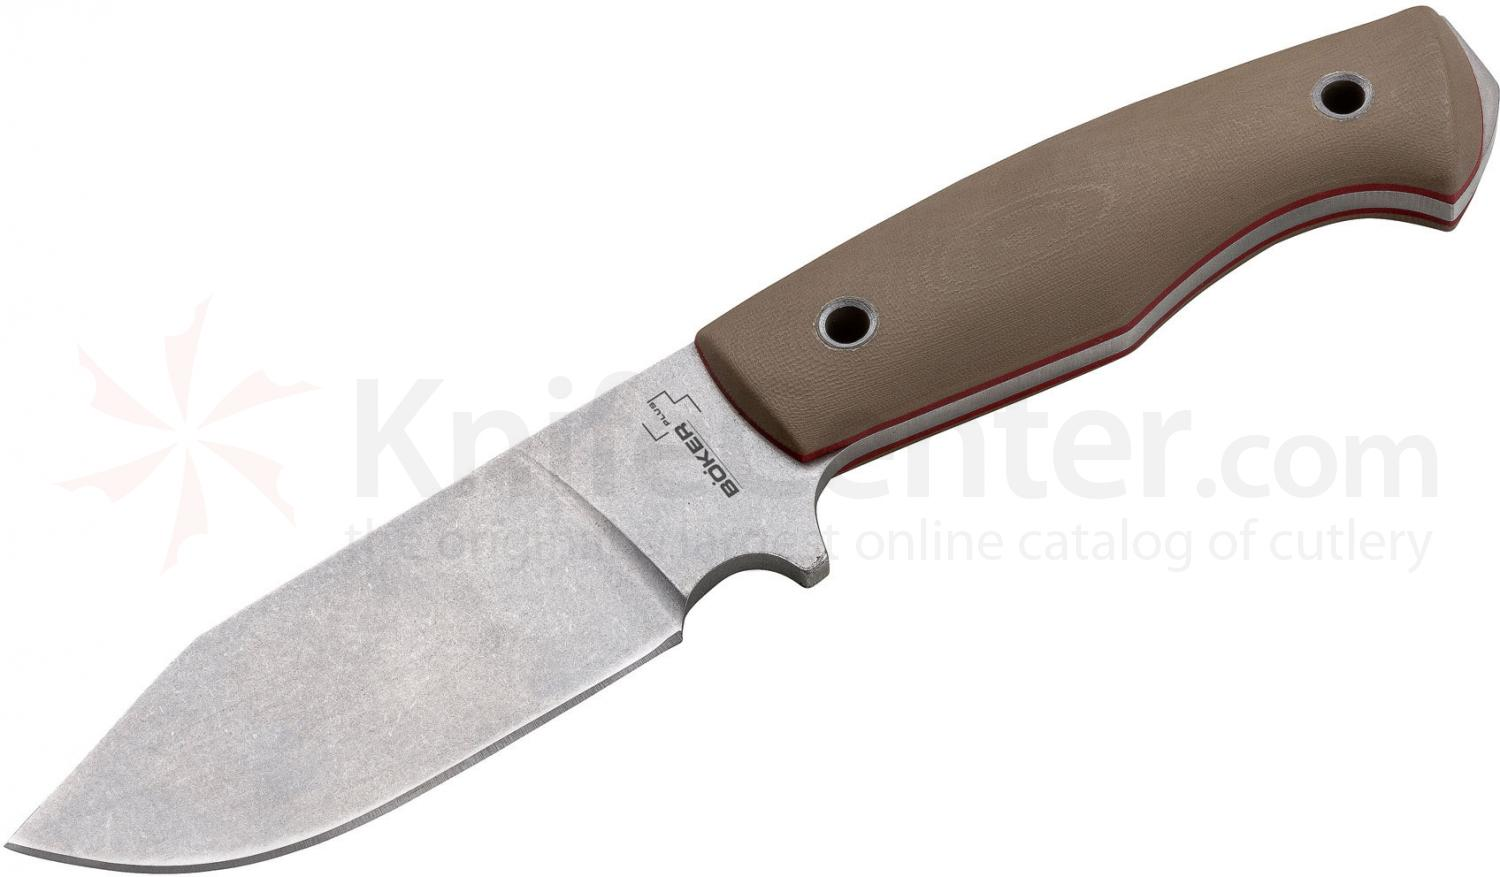 Boker Plus Rold Scout Fixed 3-1/4 inch Stonewash Blade, G10 Handles